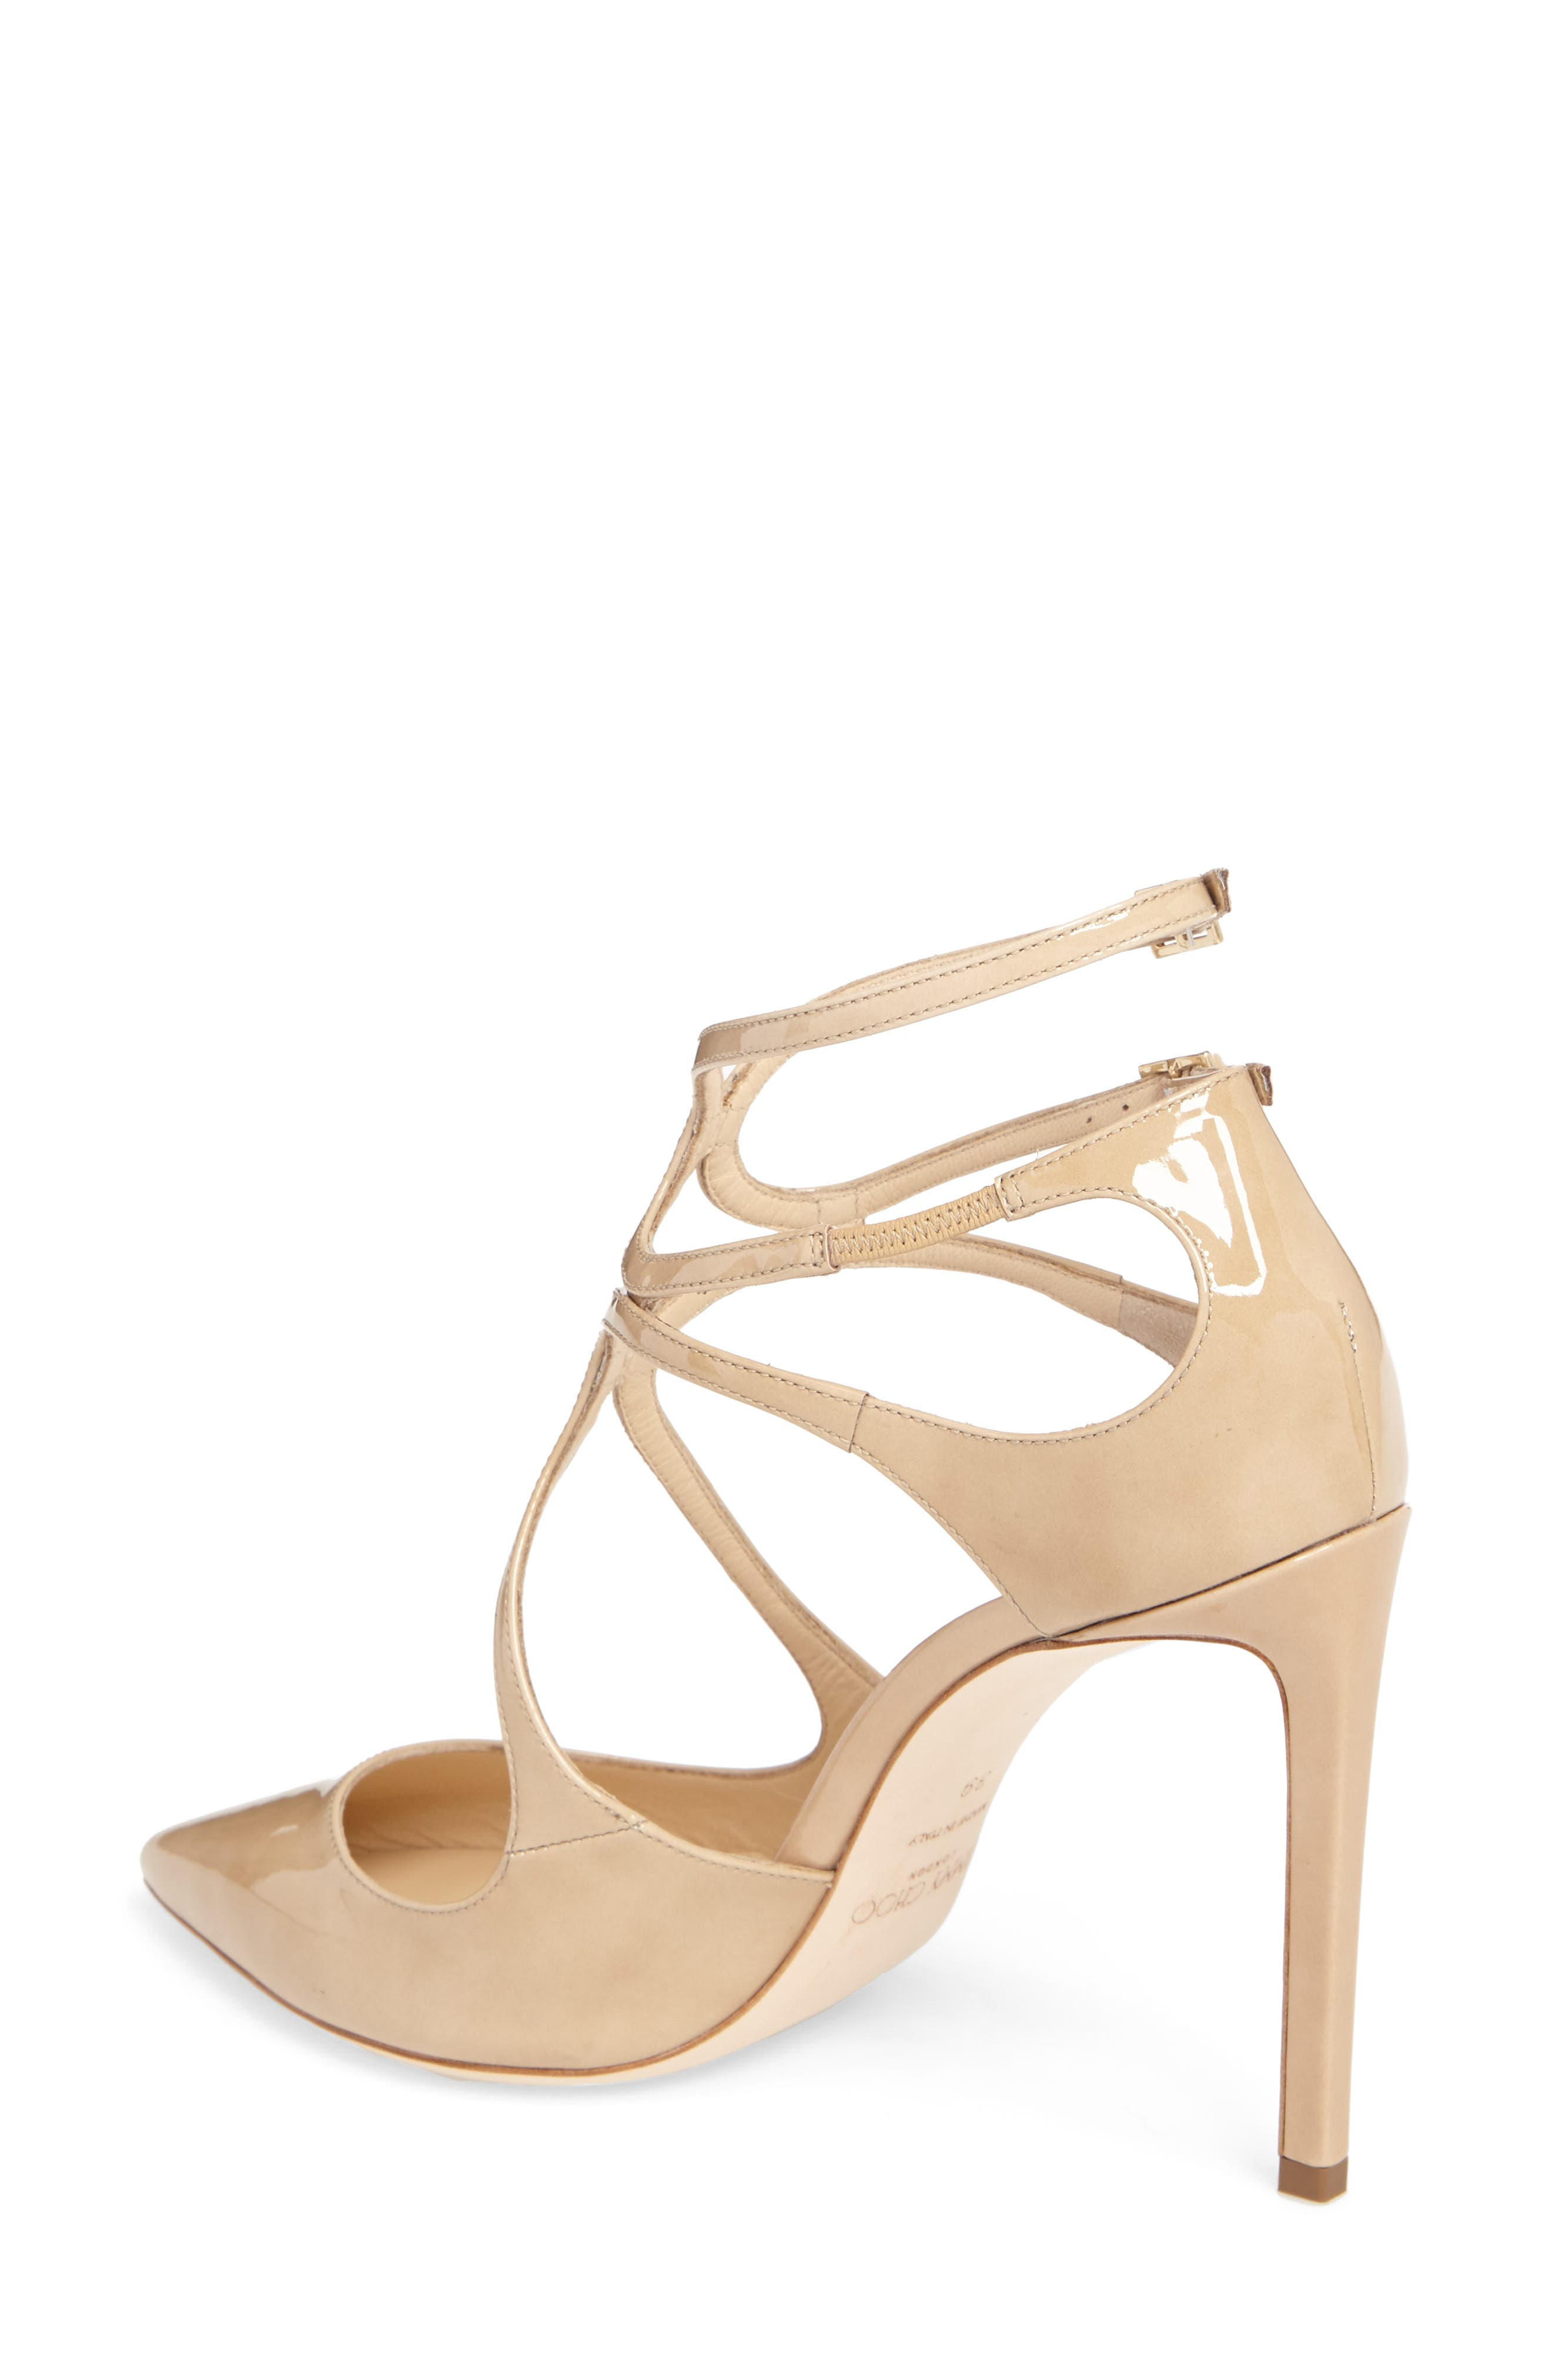 Lancer Strappy Pump,                             Alternate thumbnail 2, color,                             NUDE PATENT